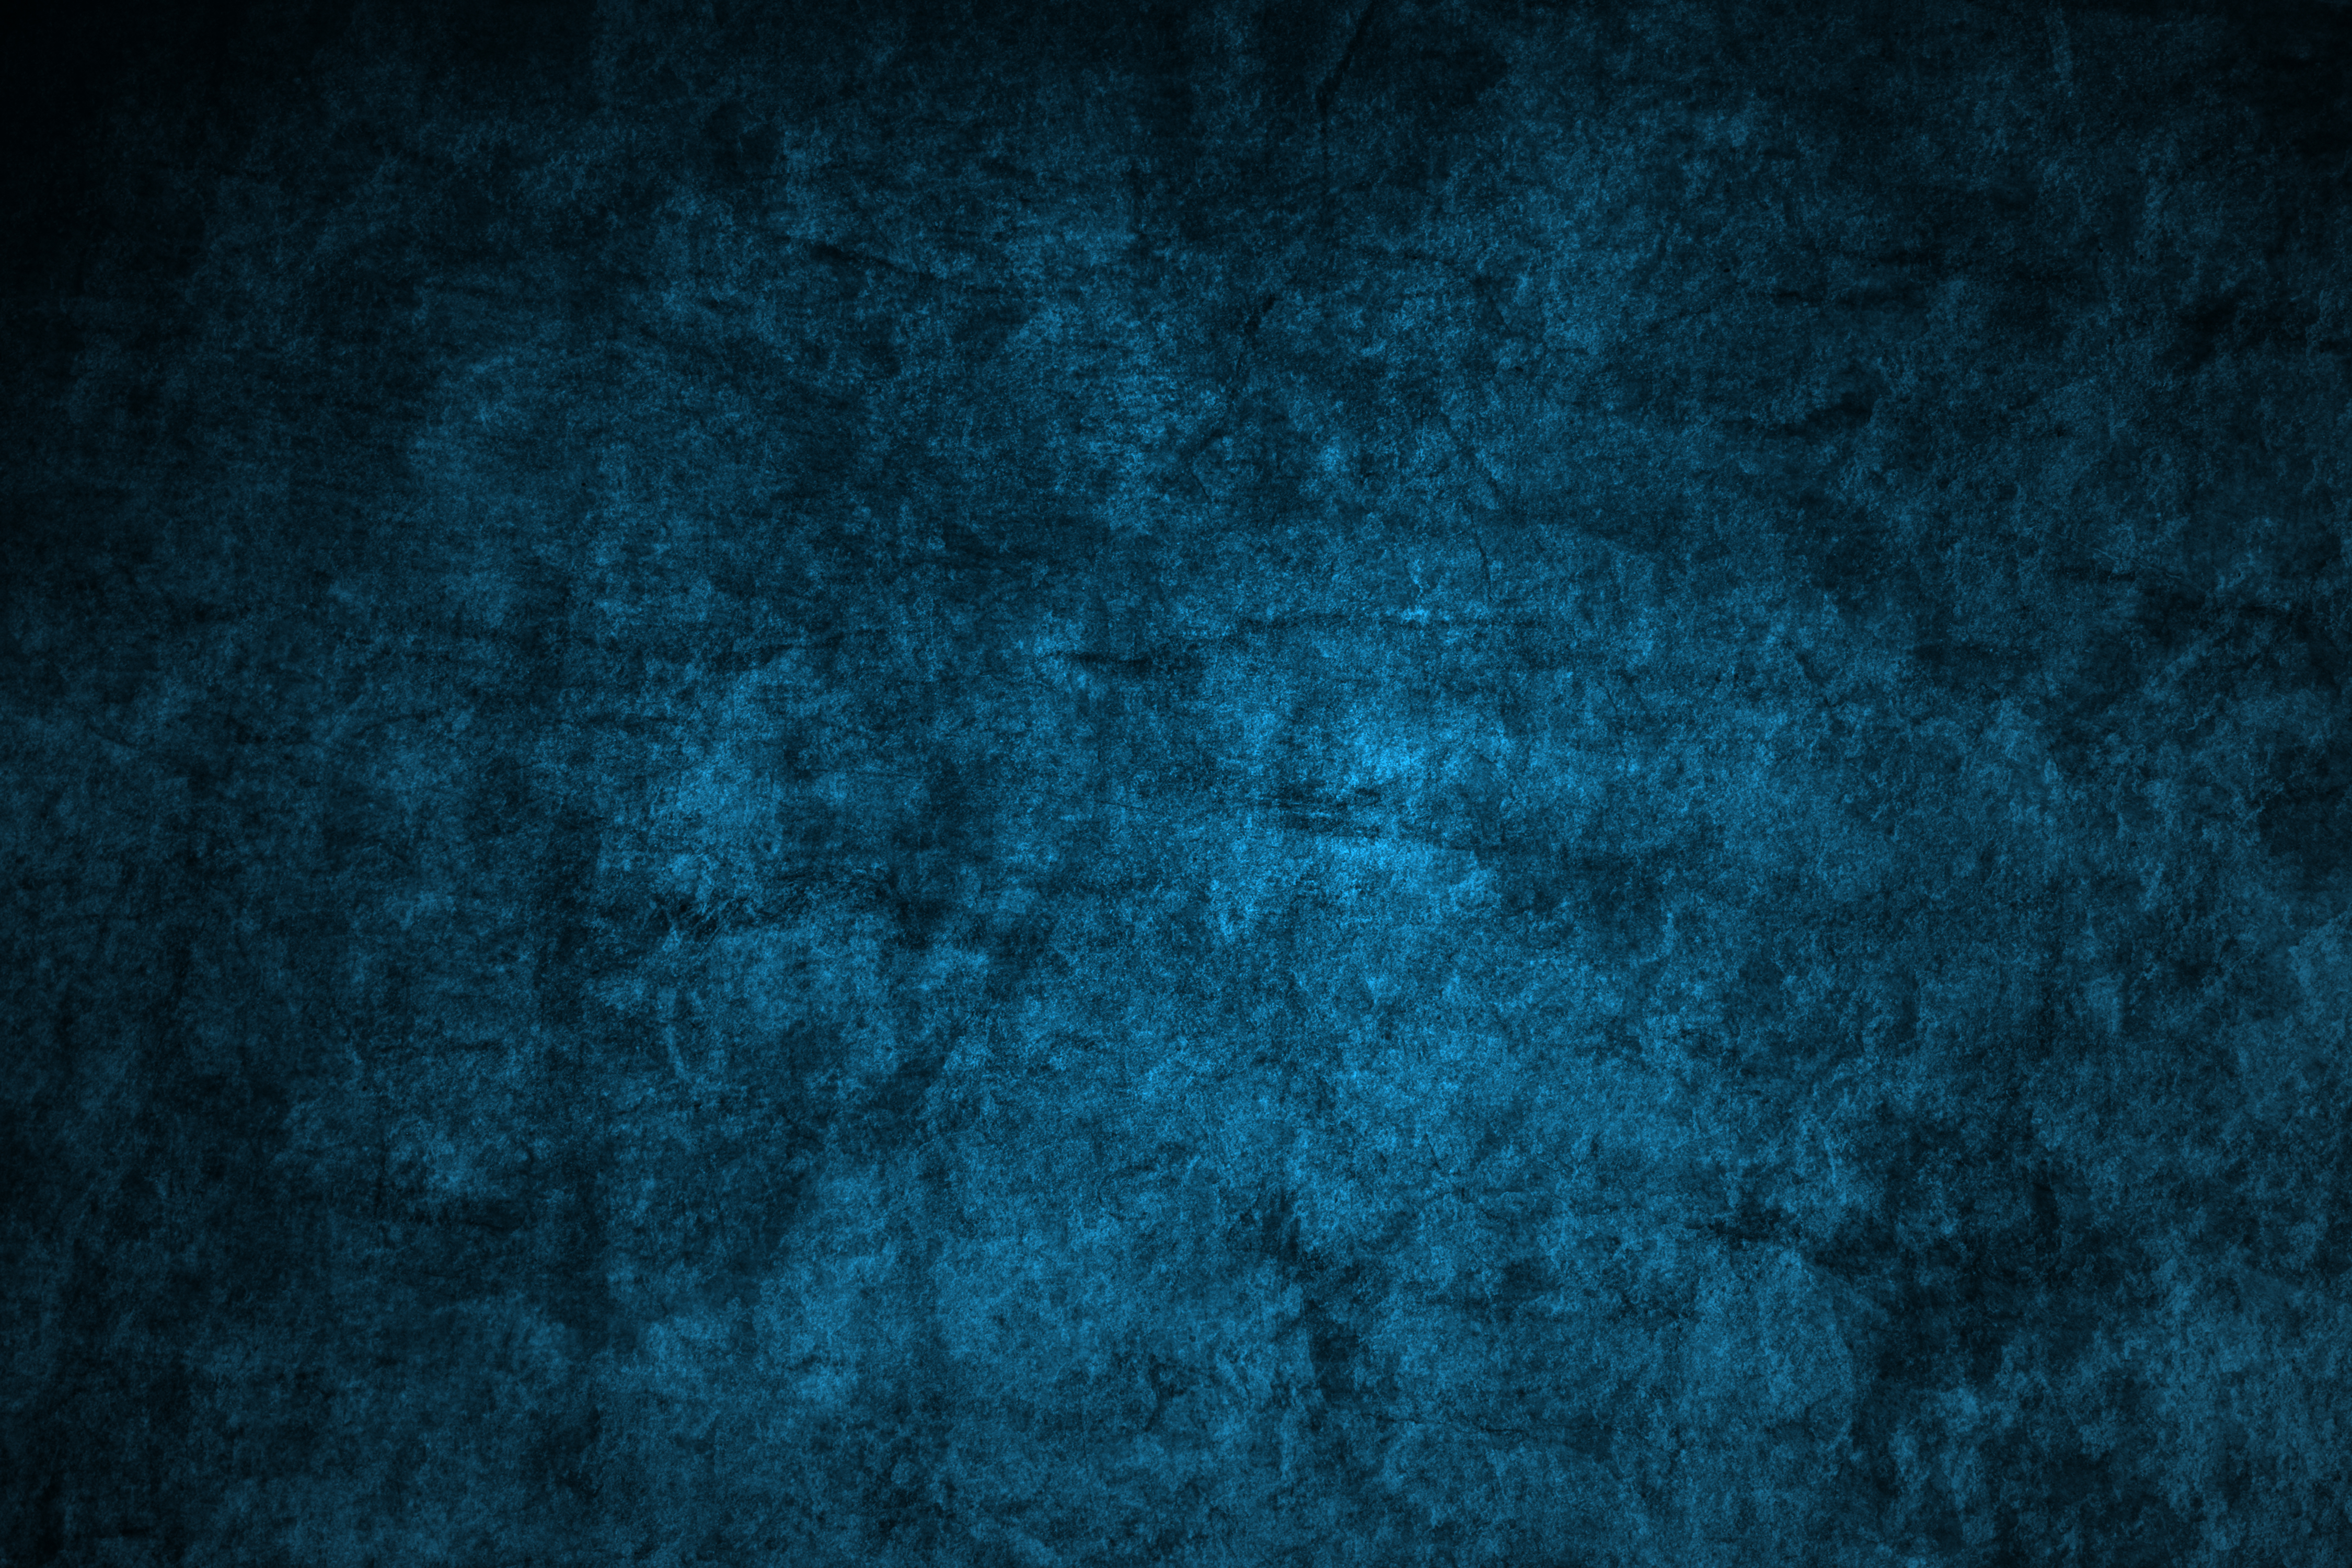 Recycled Texture Background By Sandeep M On DeviantArt